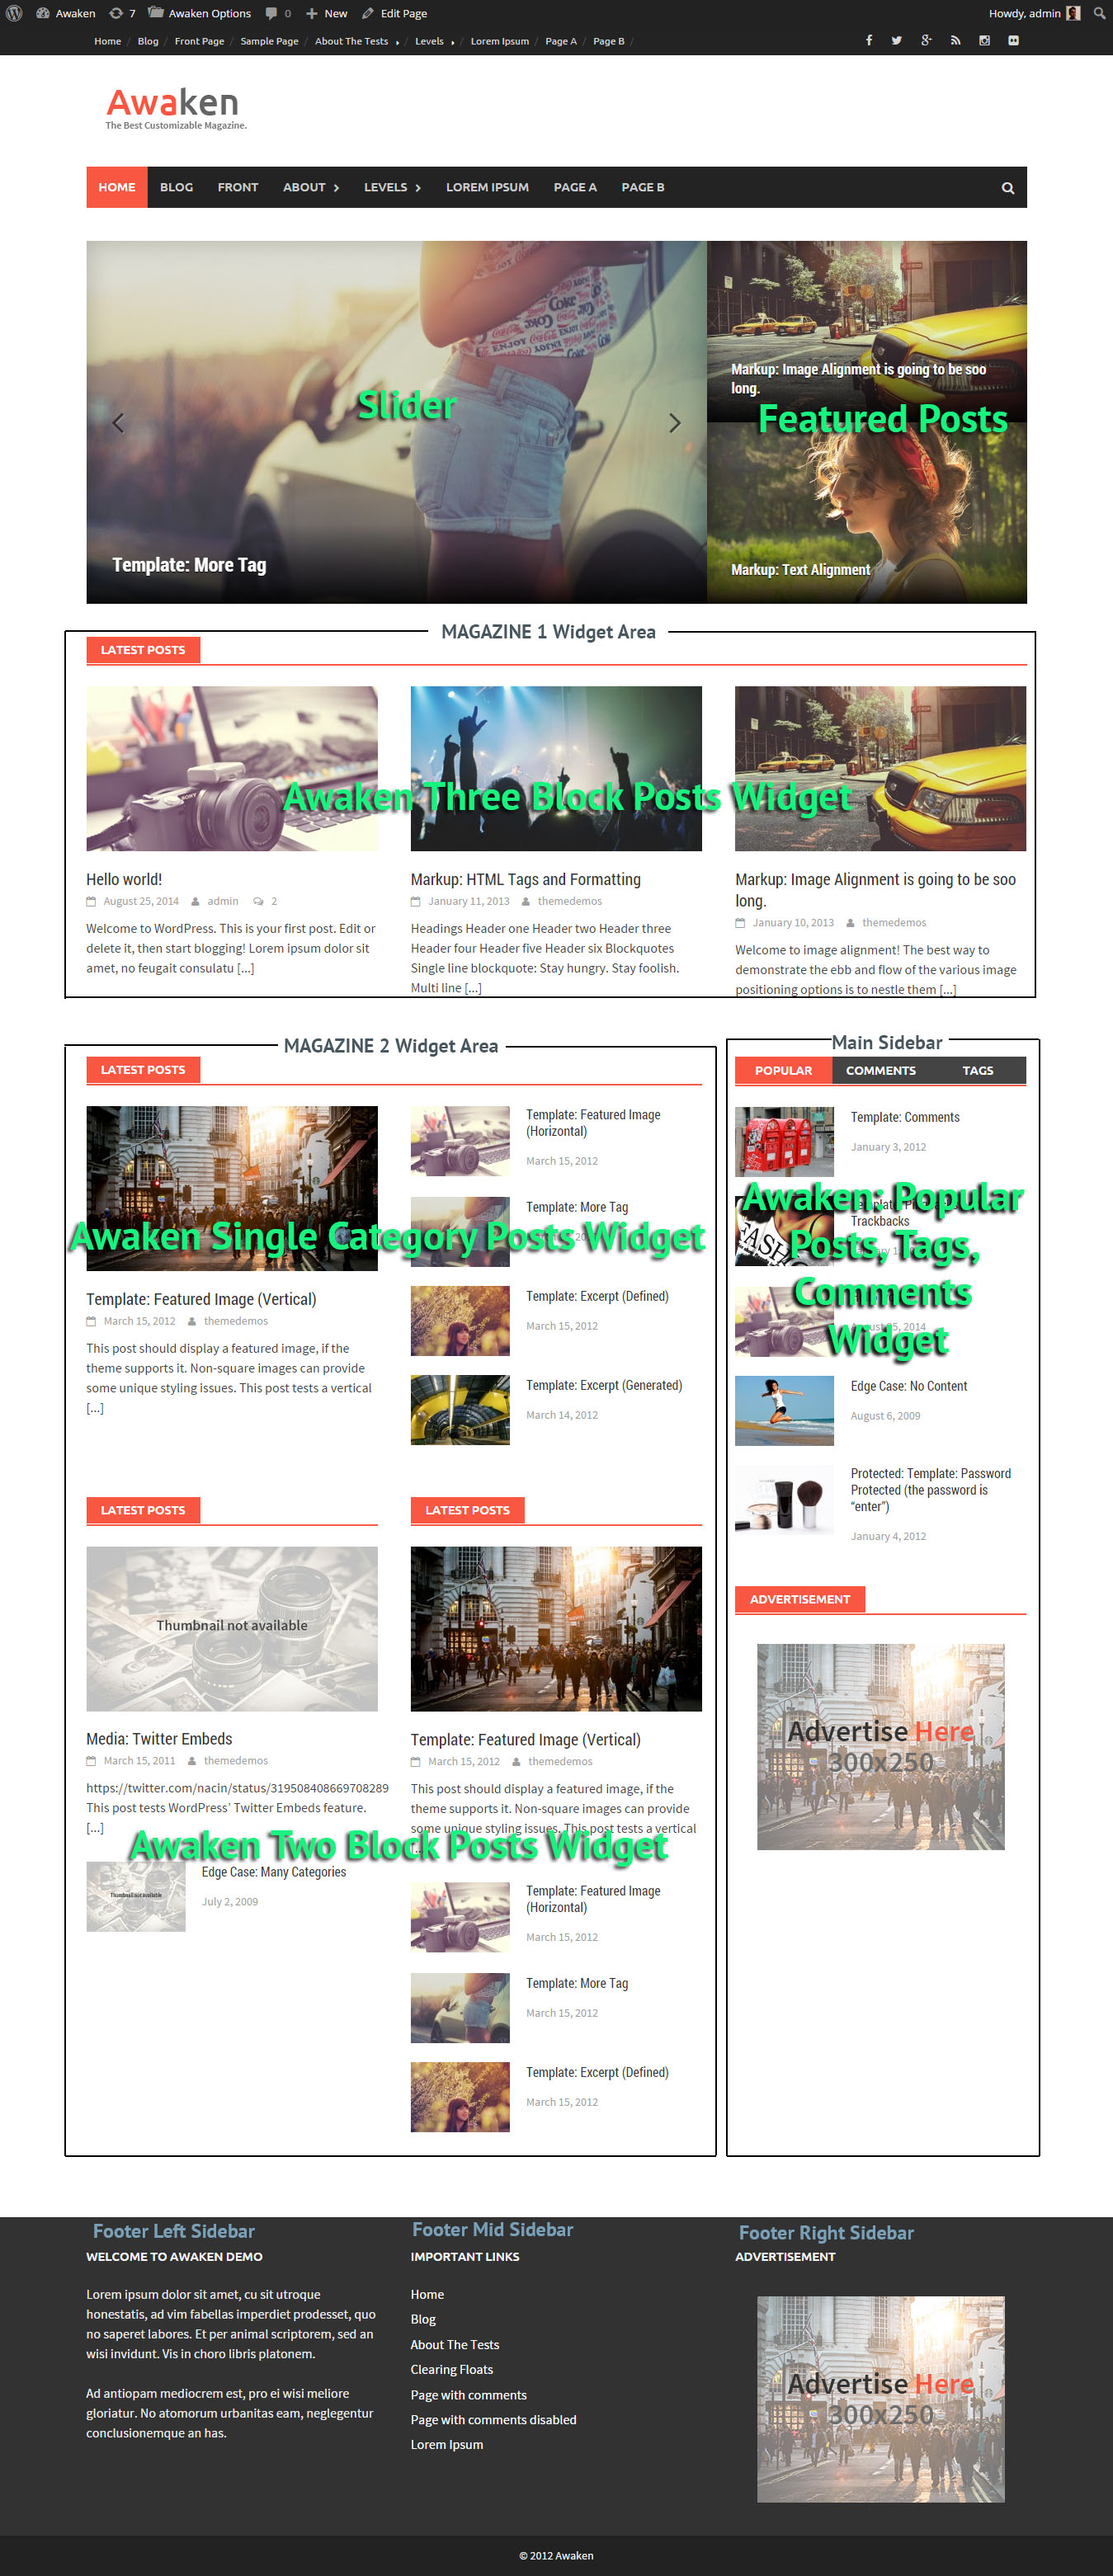 Awaken WordPress Theme Widget Areas